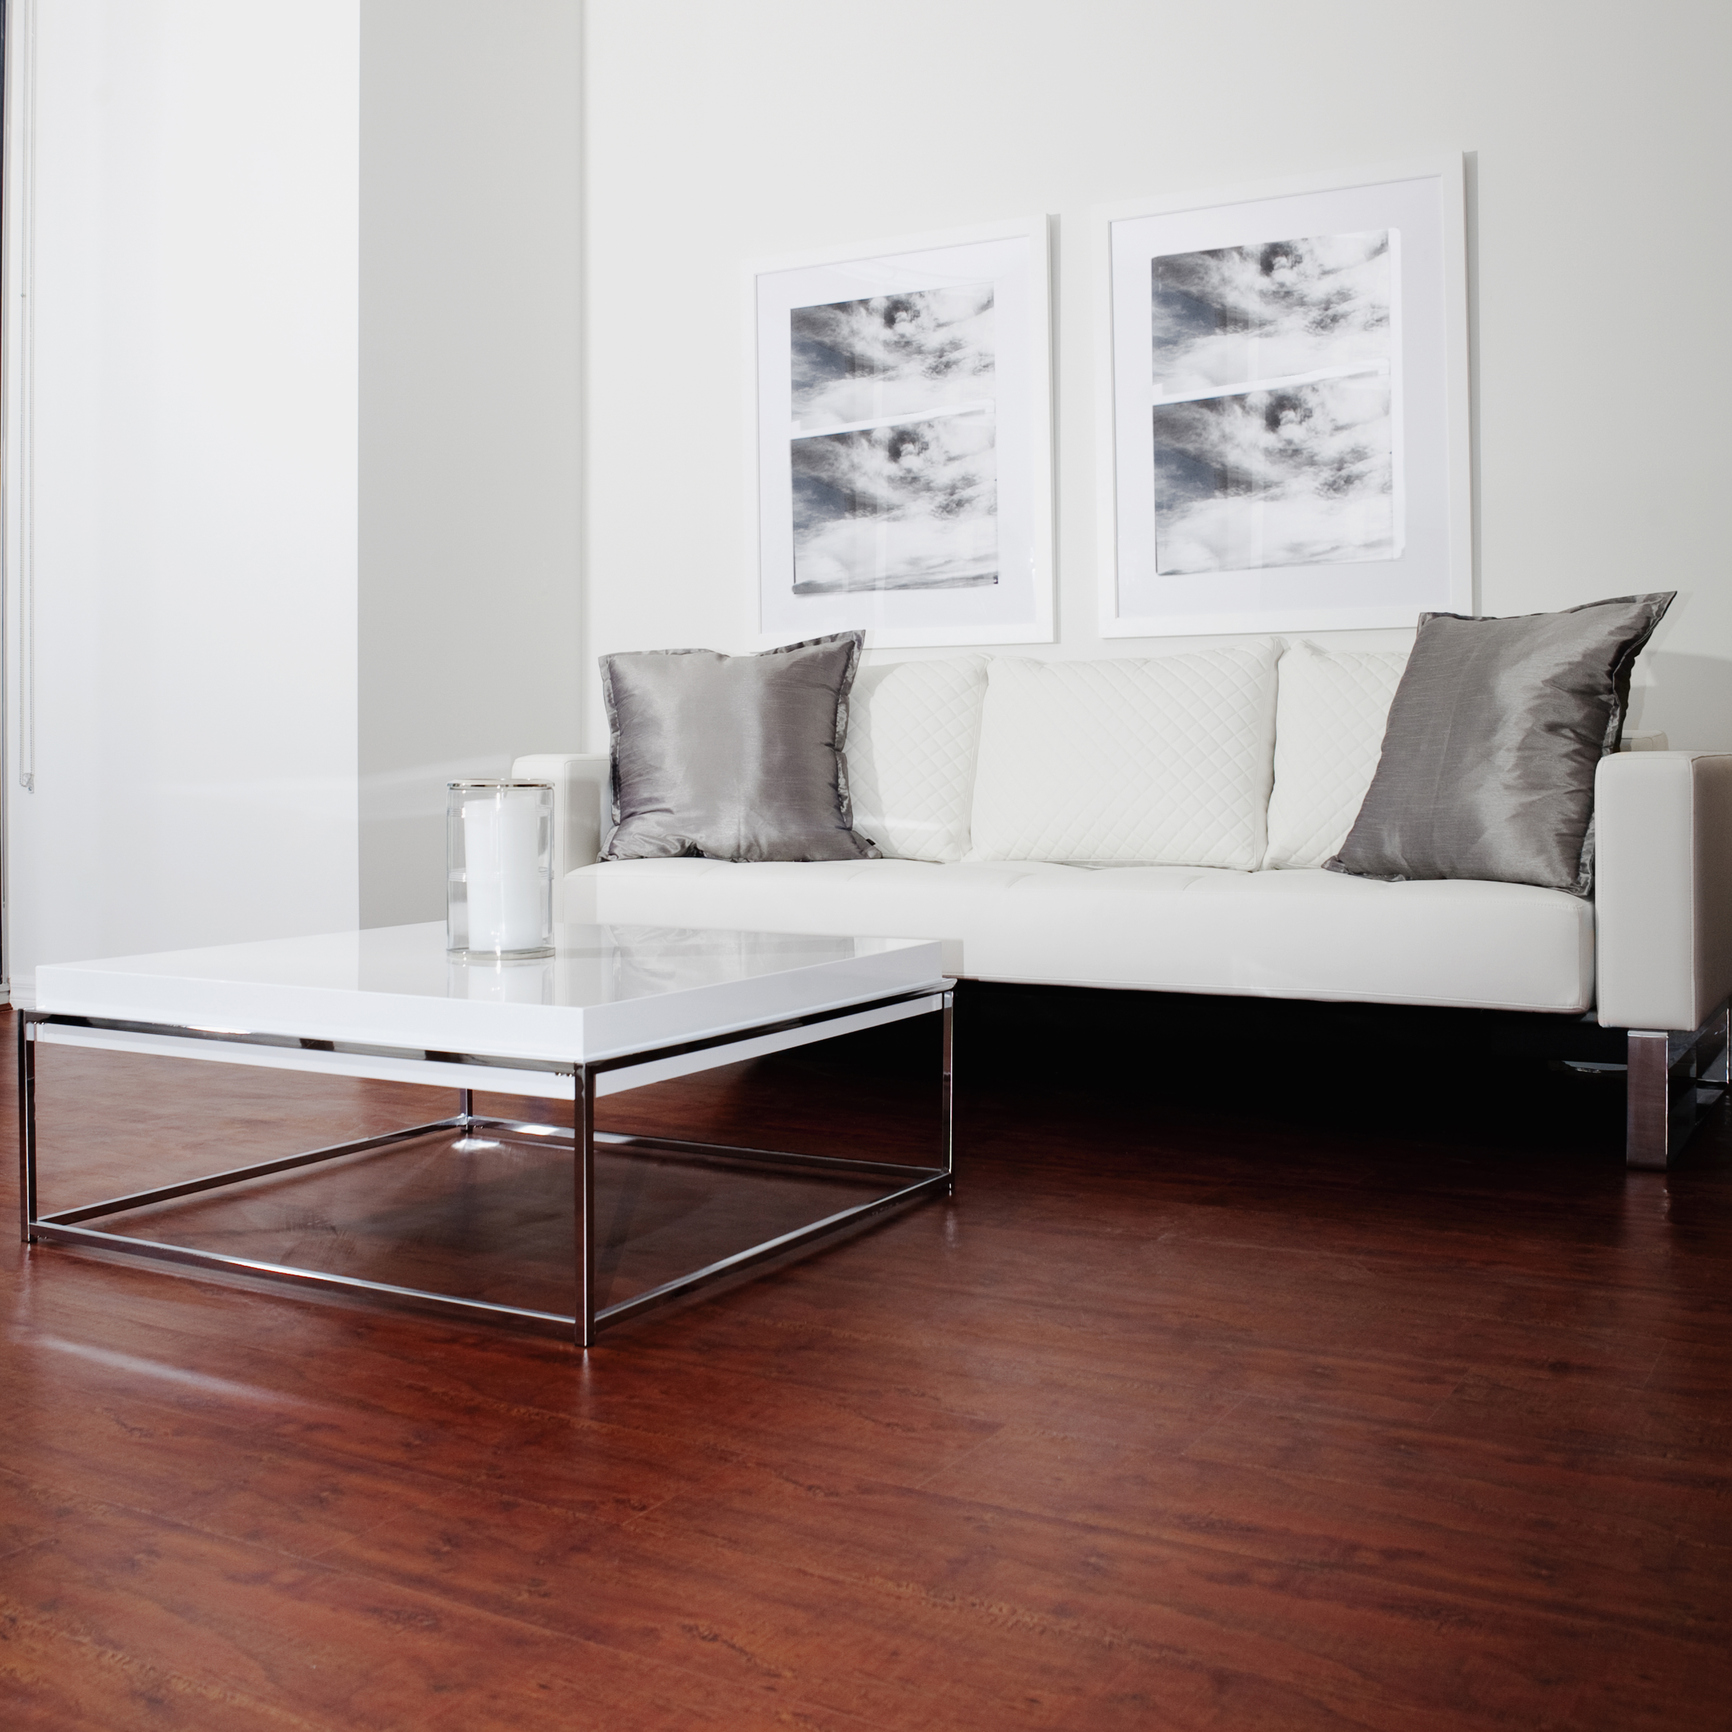 Sofa, wall art and coffee table in modern living room